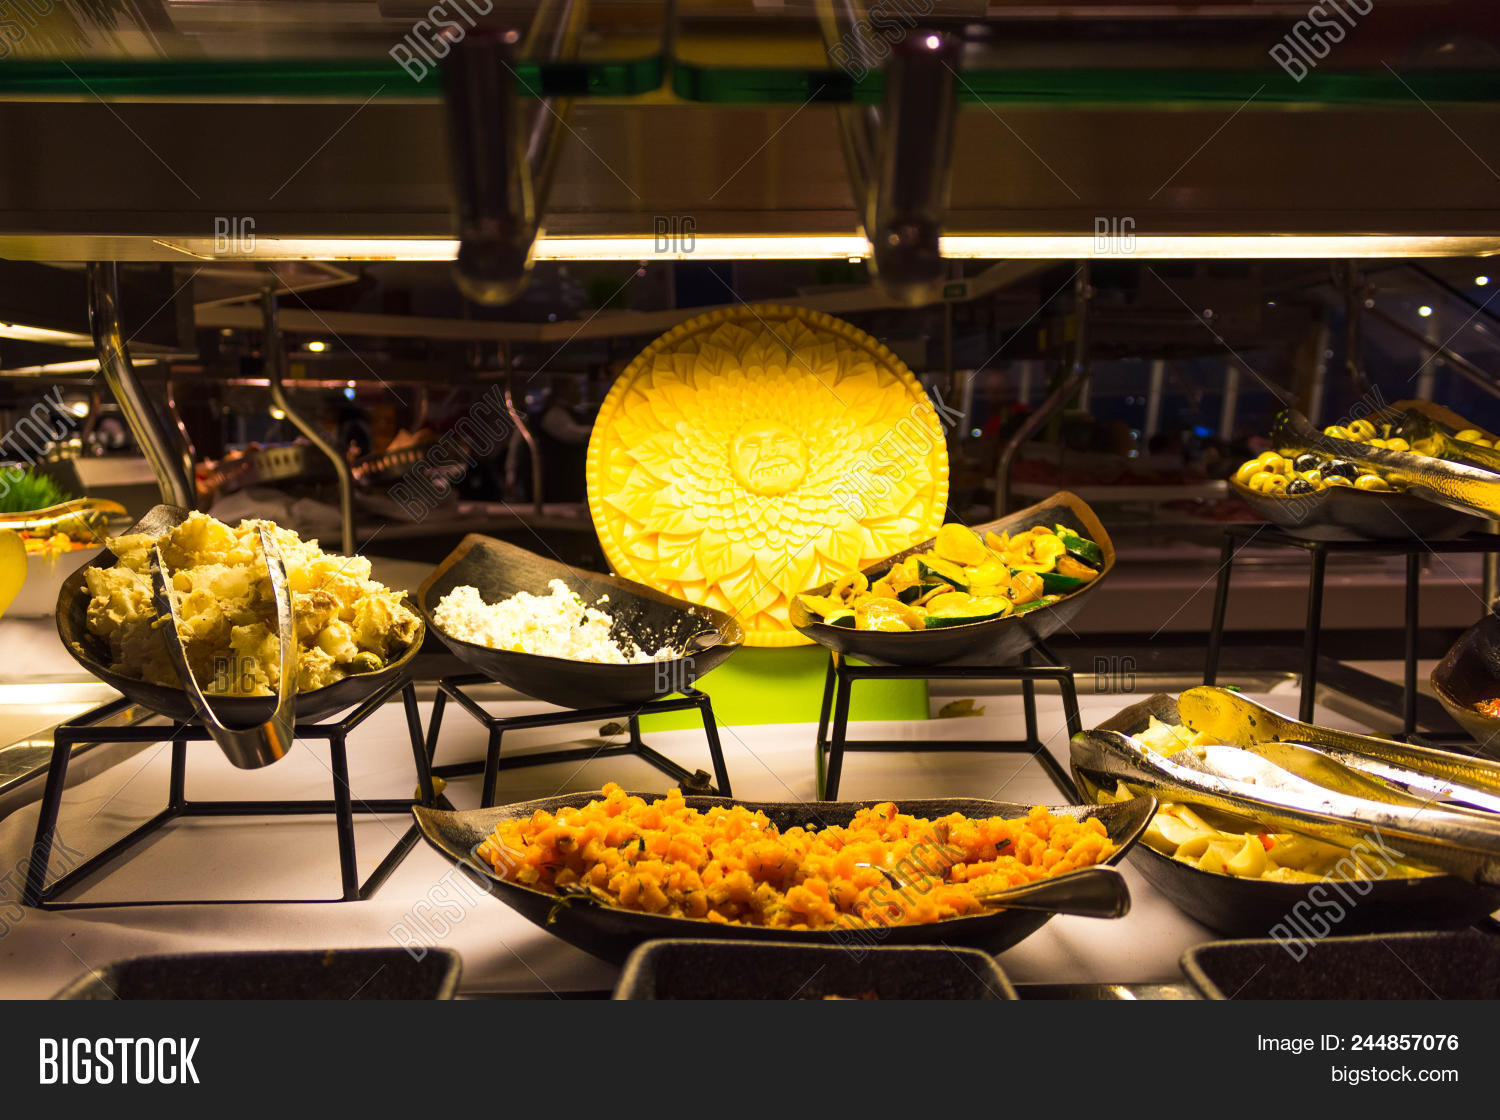 Dining Room Buffet Image Photo Free Trial Bigstock